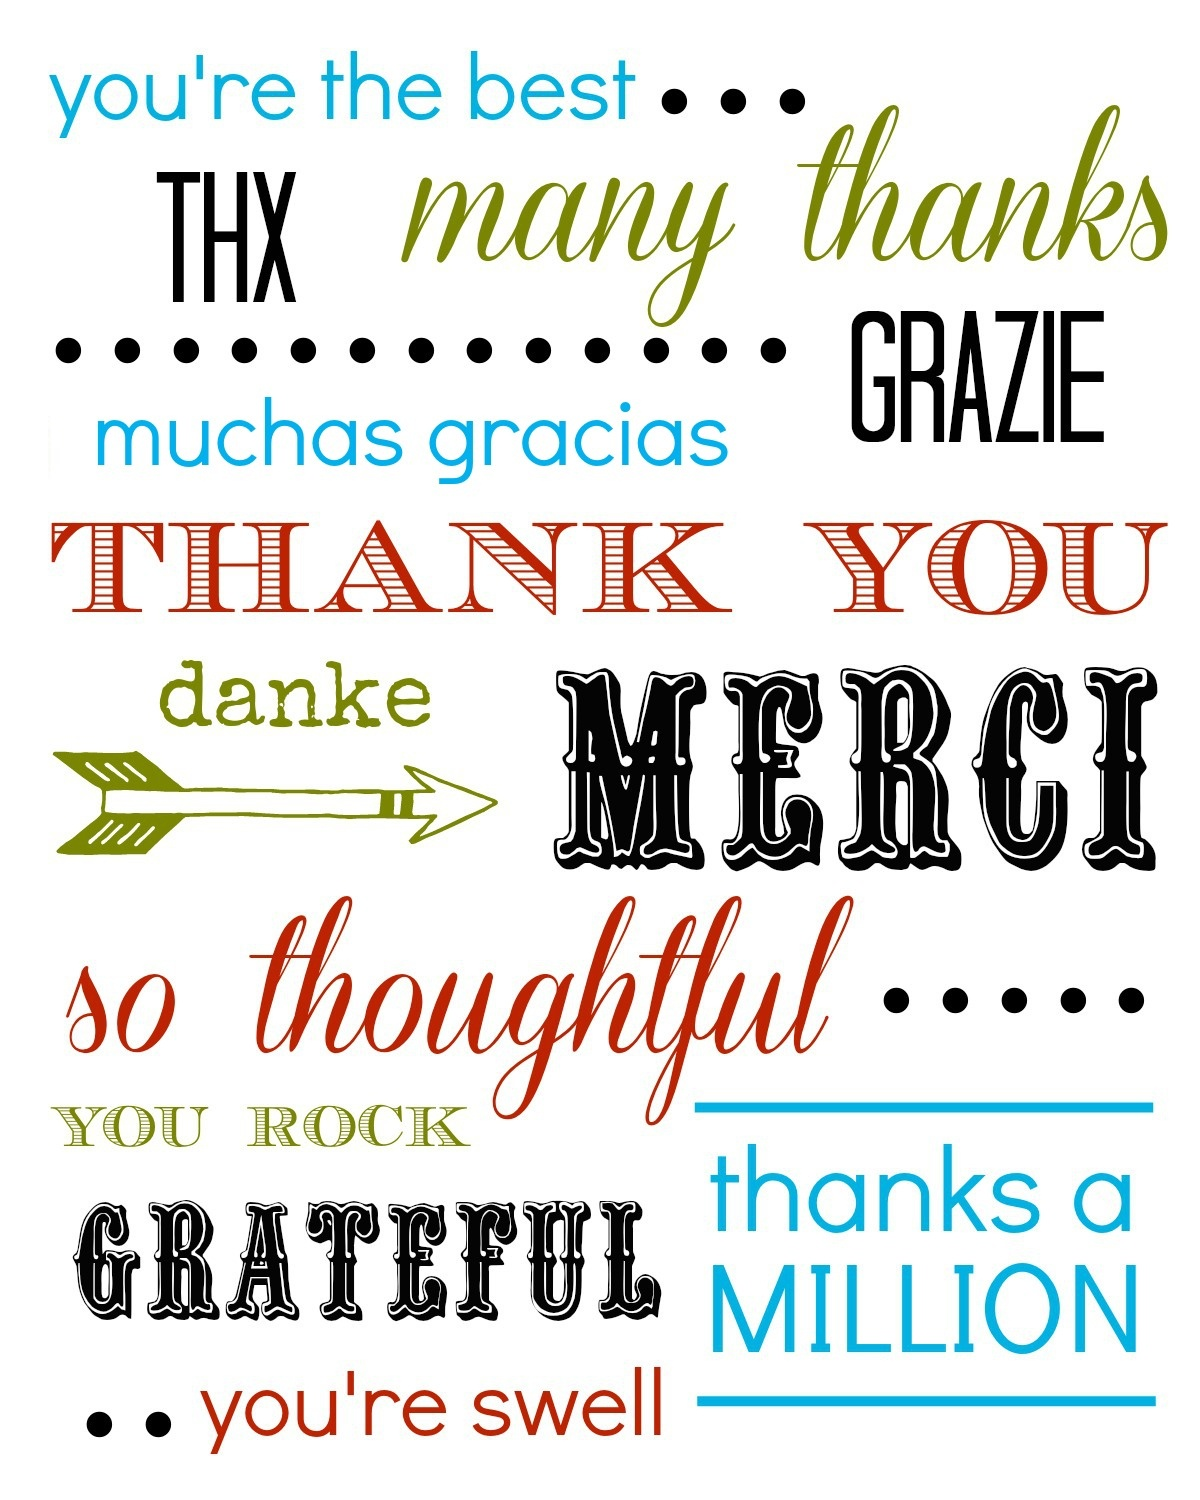 Thank You Card Free Printable - Free Printable Custom Thank You Cards